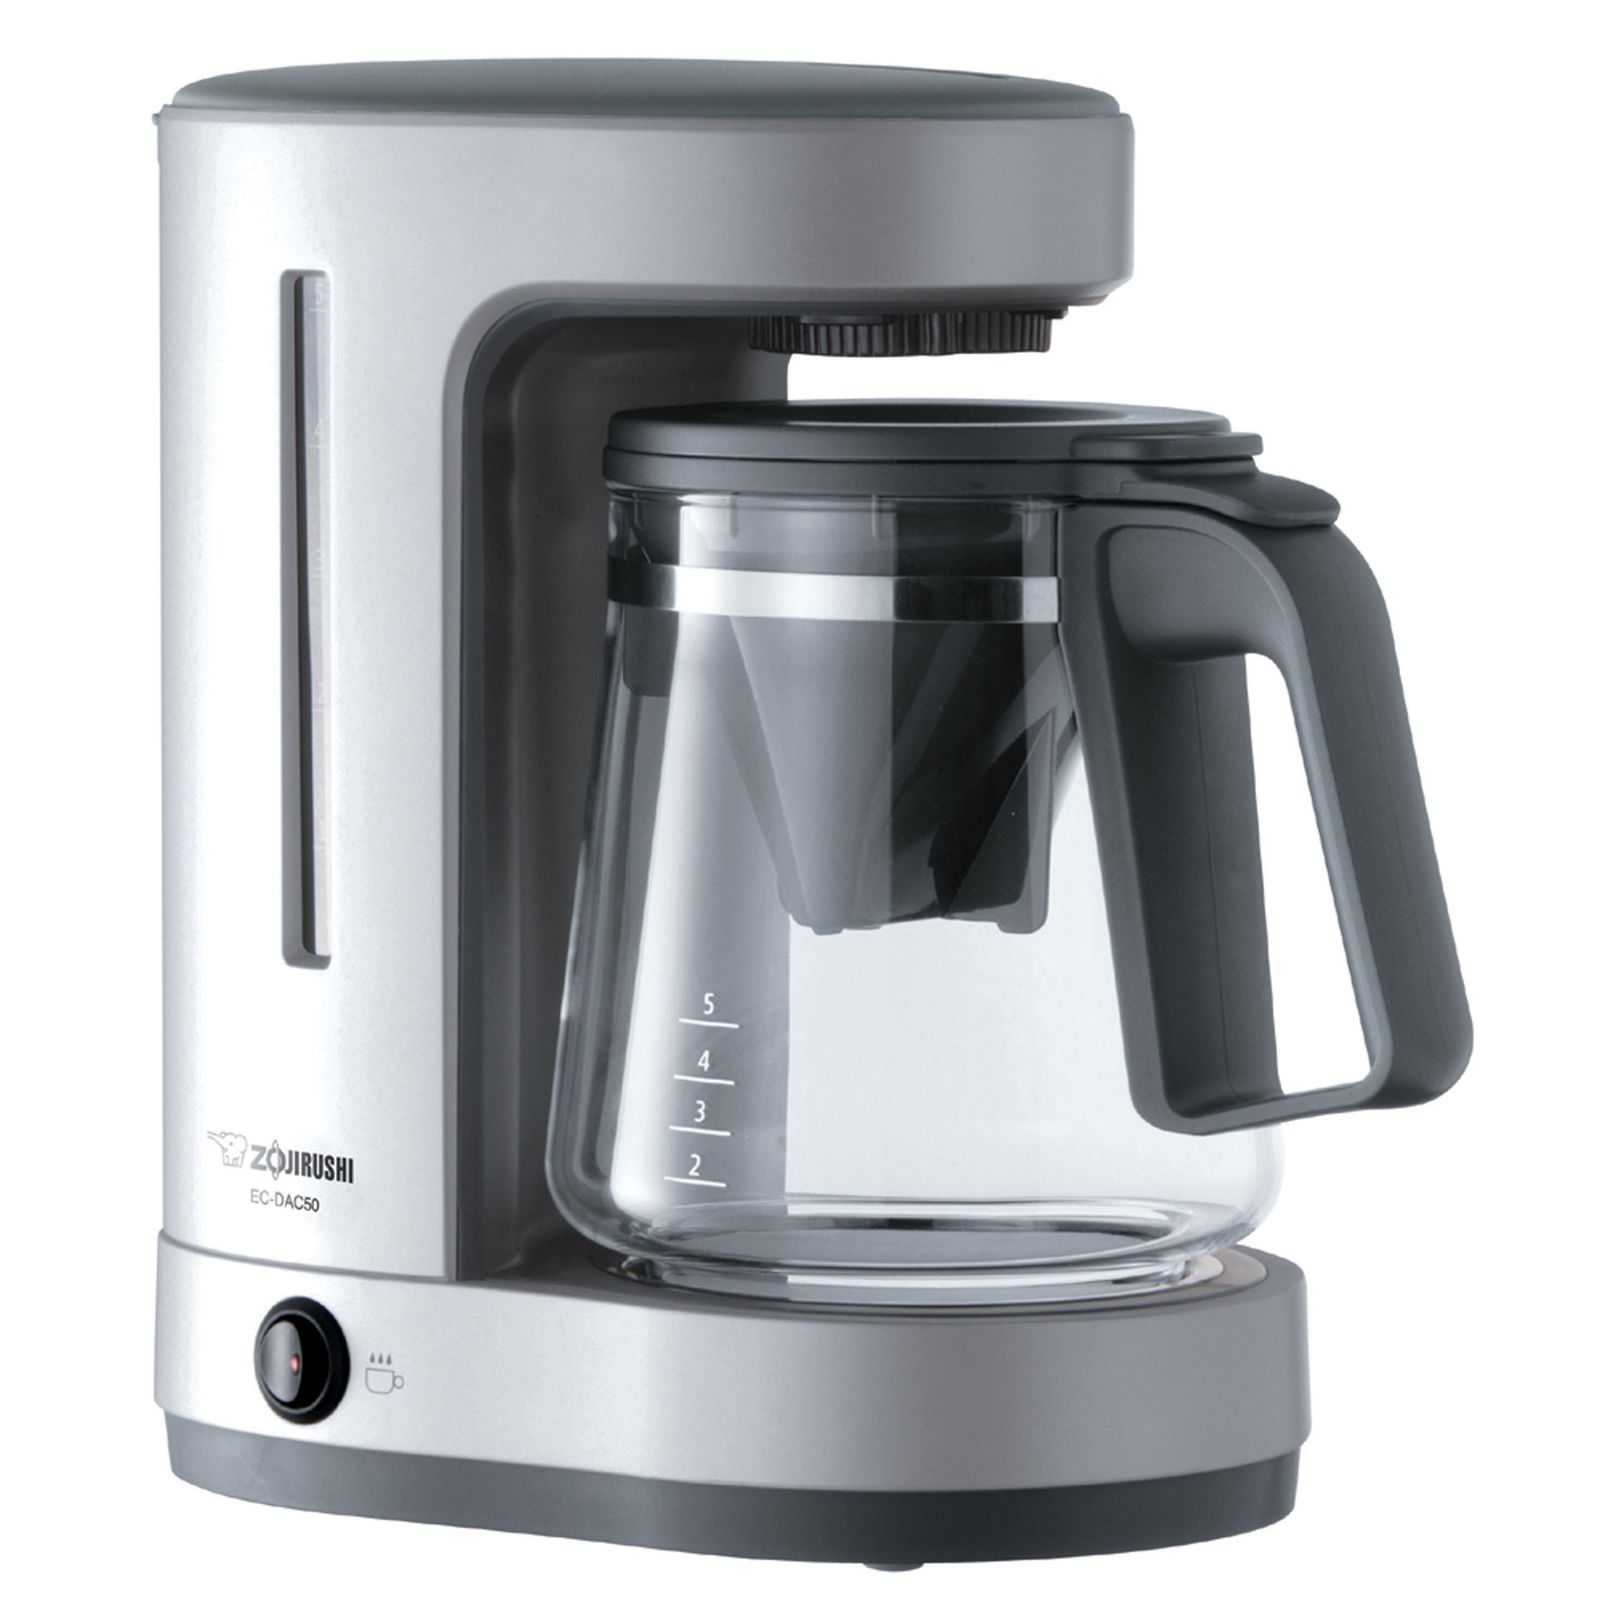 Coffee Maker Zojirushi Review : Zojirushi ZUTTO Coffee Maker #EC-DAC50 Review